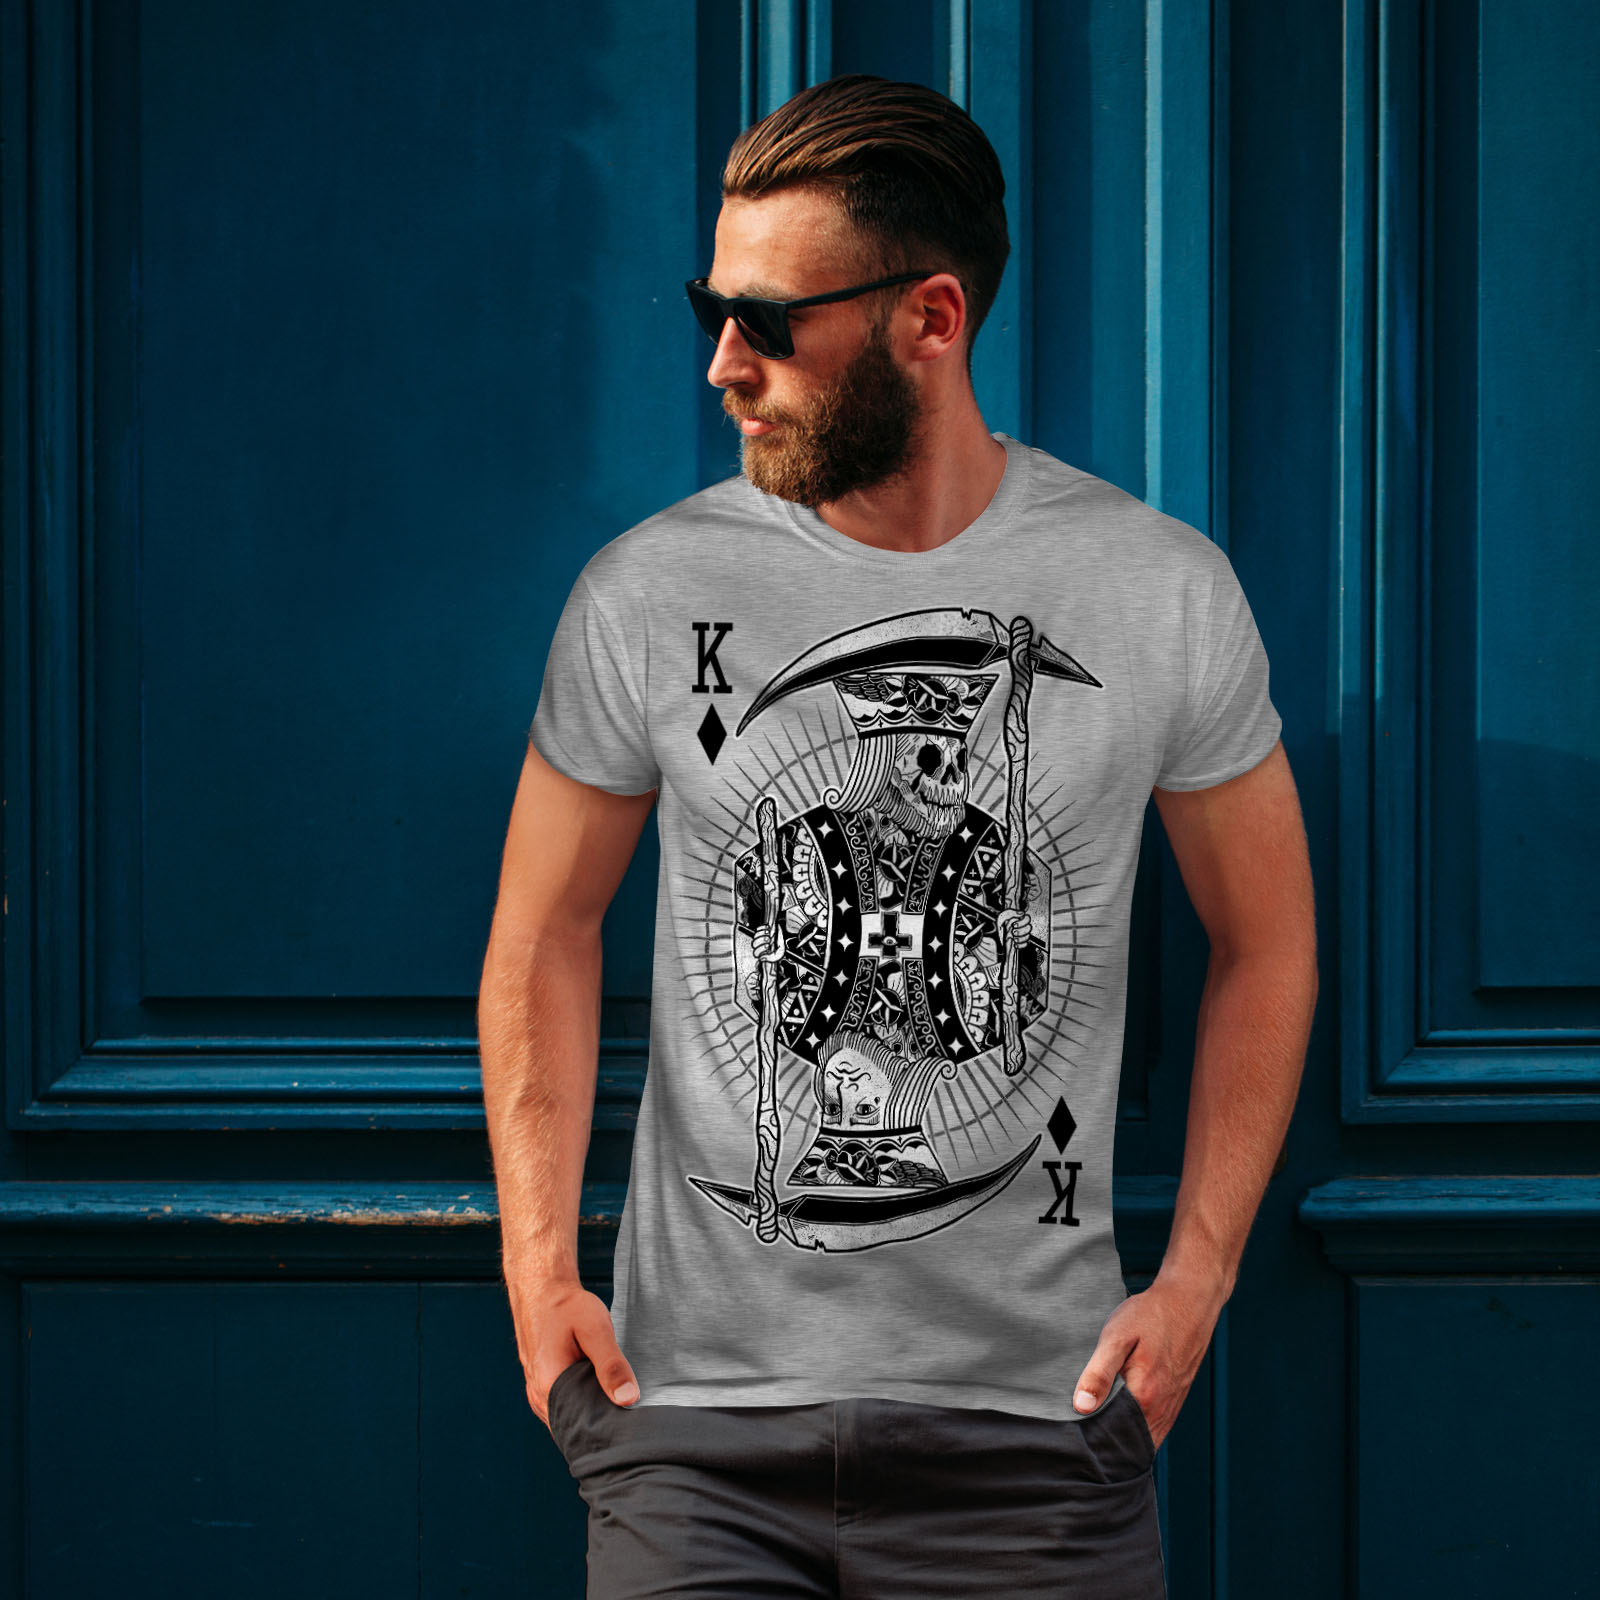 Wellcoda-Poker-Horror-King-Skull-Mens-T-shirt-Graphic-Design-Printed-Tee thumbnail 16